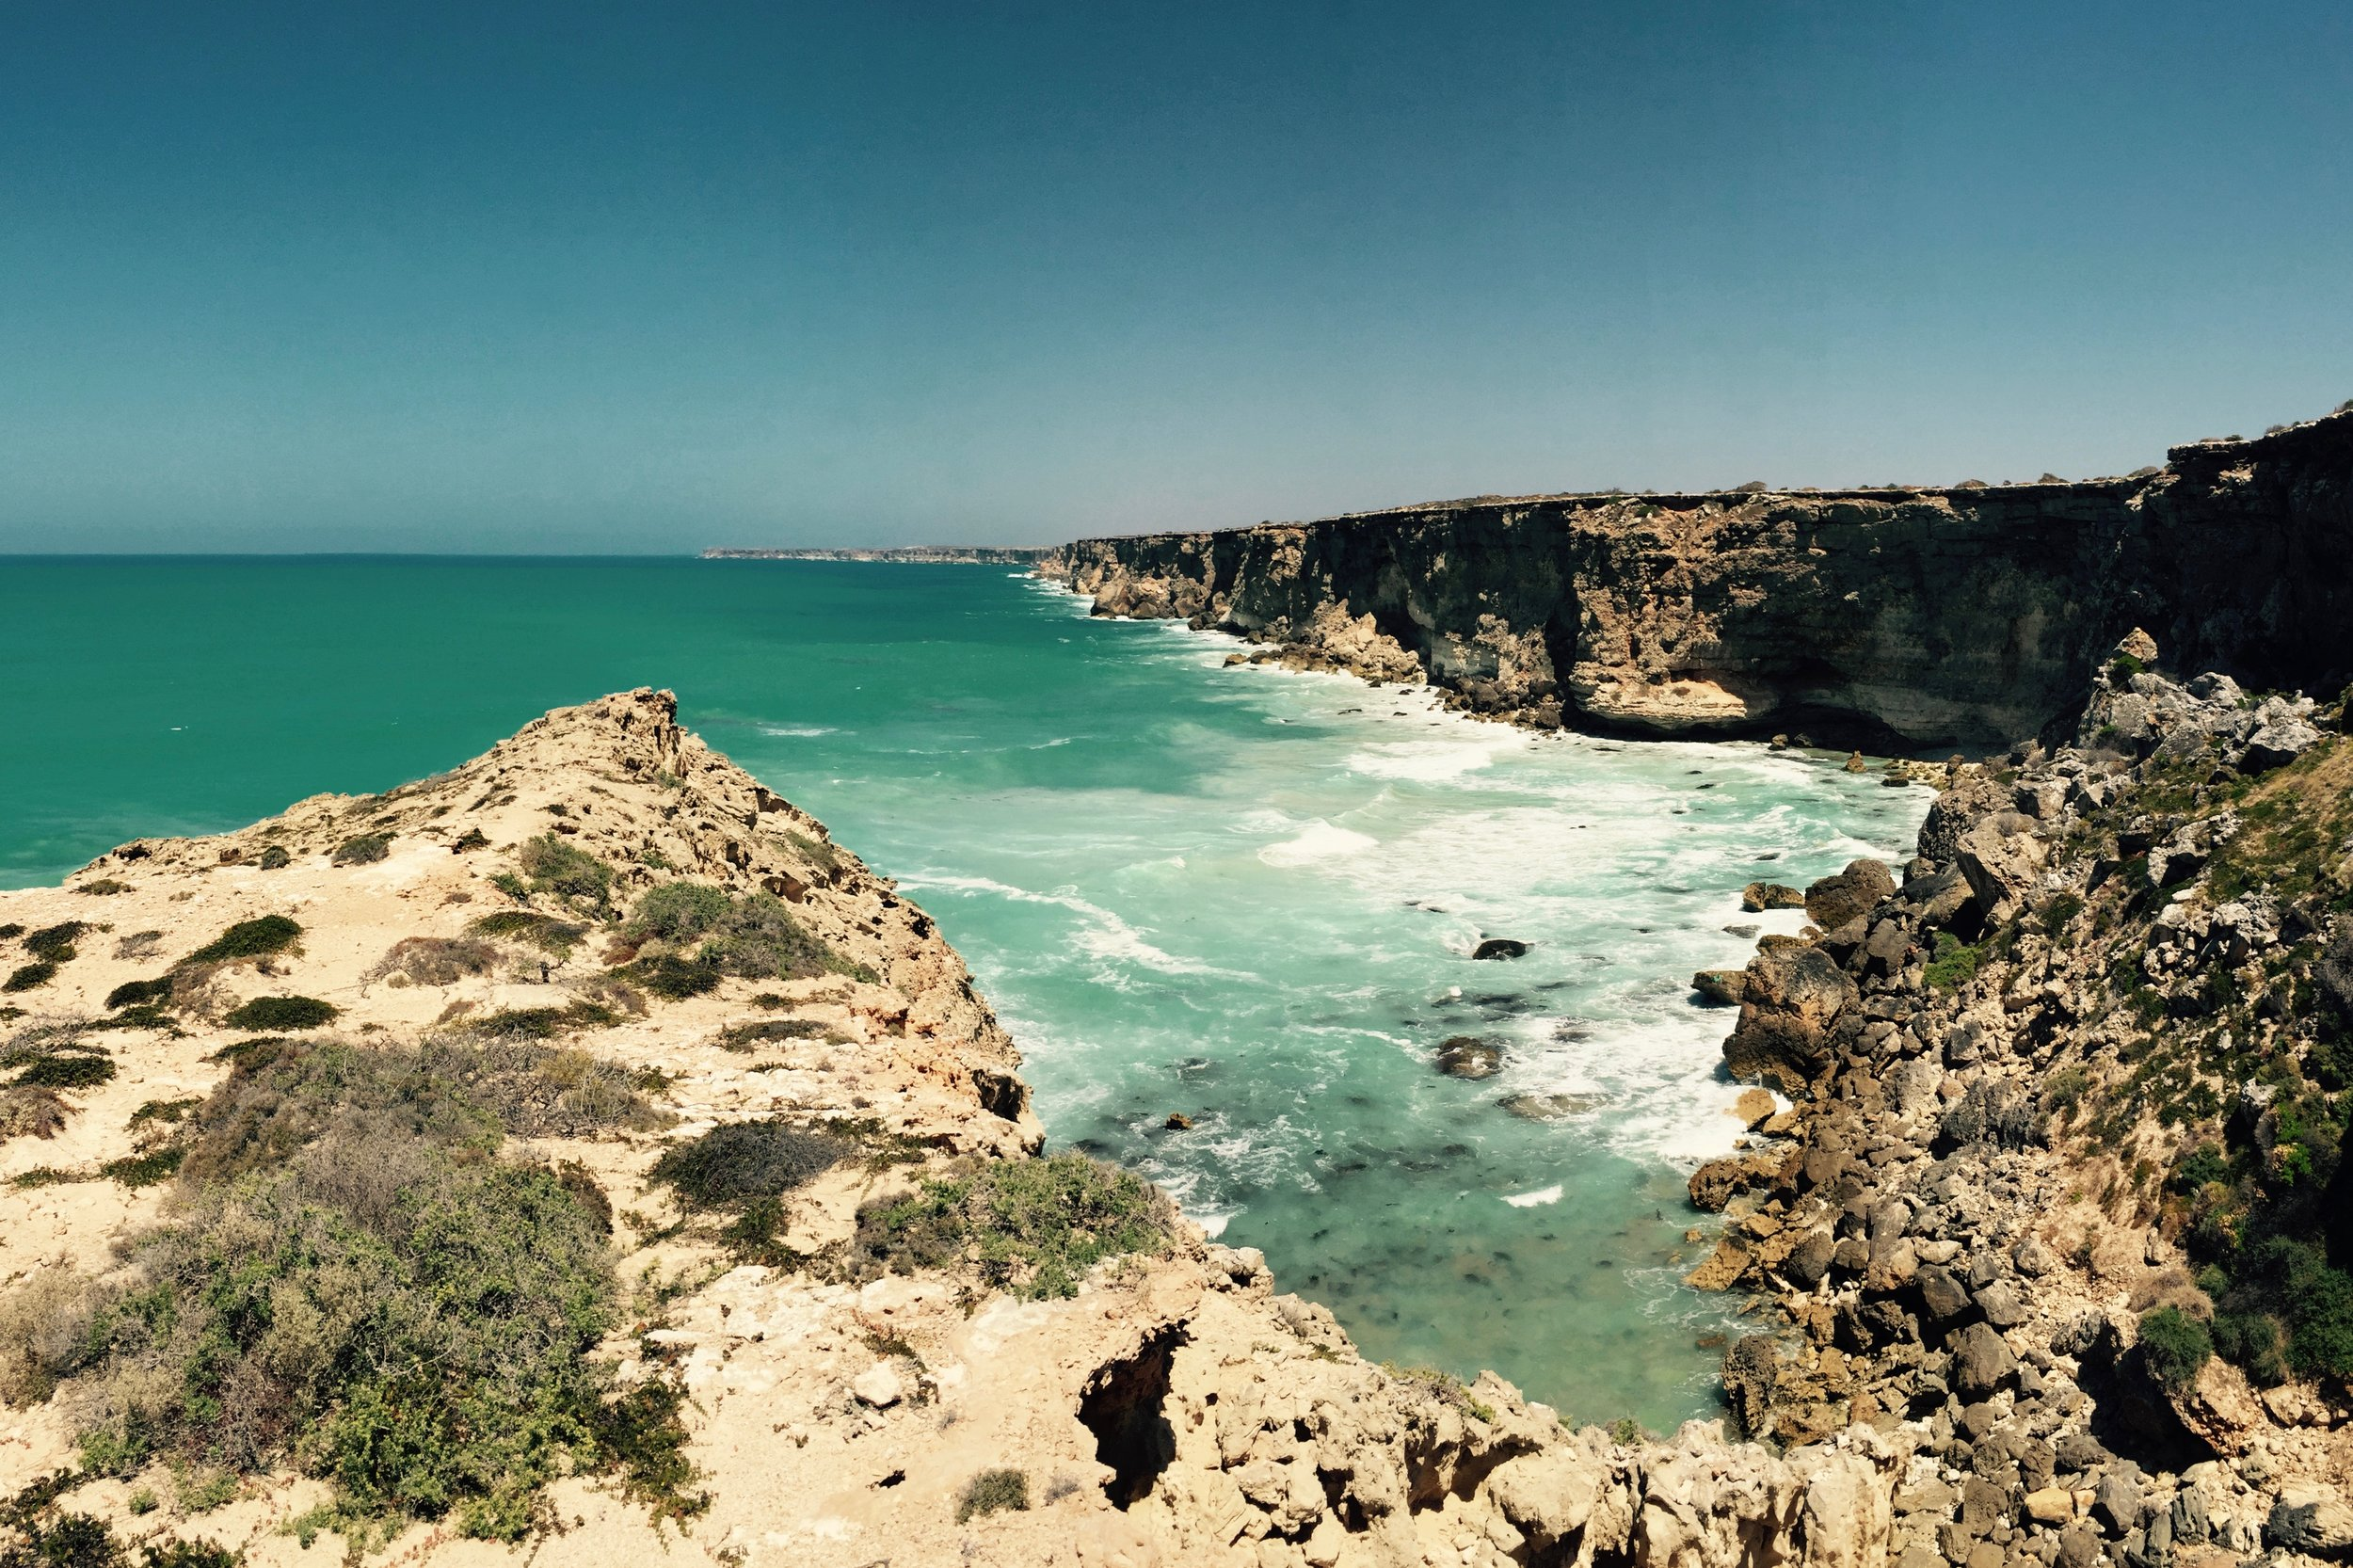 Pictured: The 'Head of the Bight', is a spectacular landscape where the continent of Australia meets the Southern Ocean.